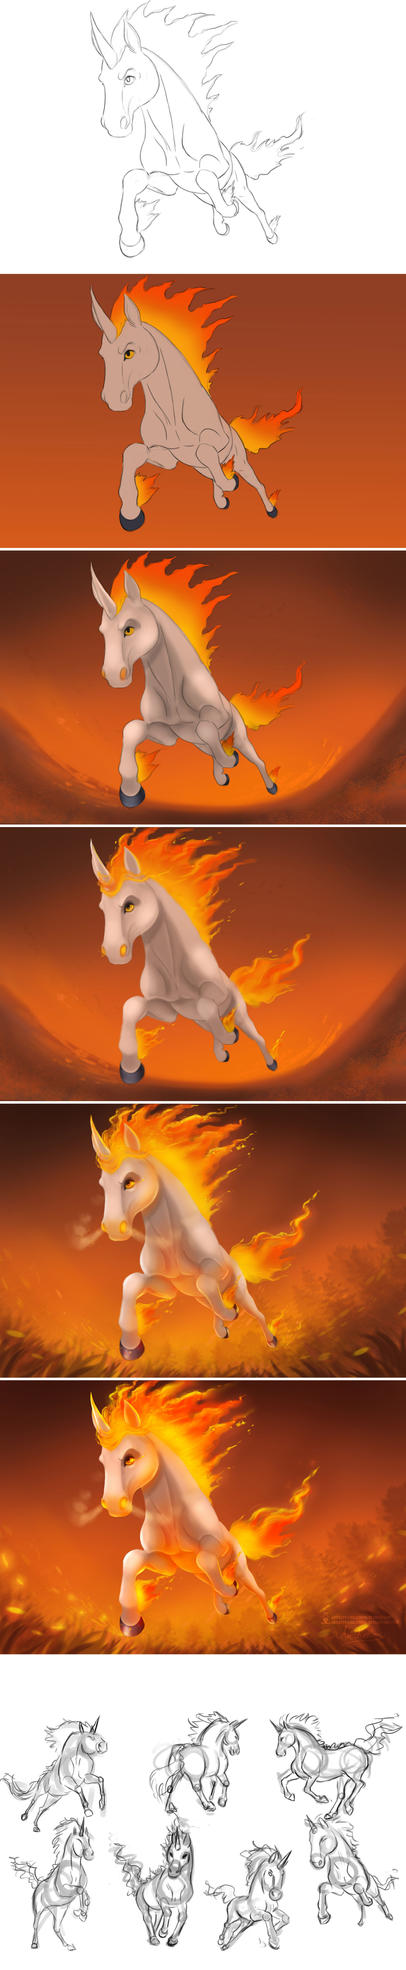 Rapidash Process + Sketches by ArtKitt-Creations